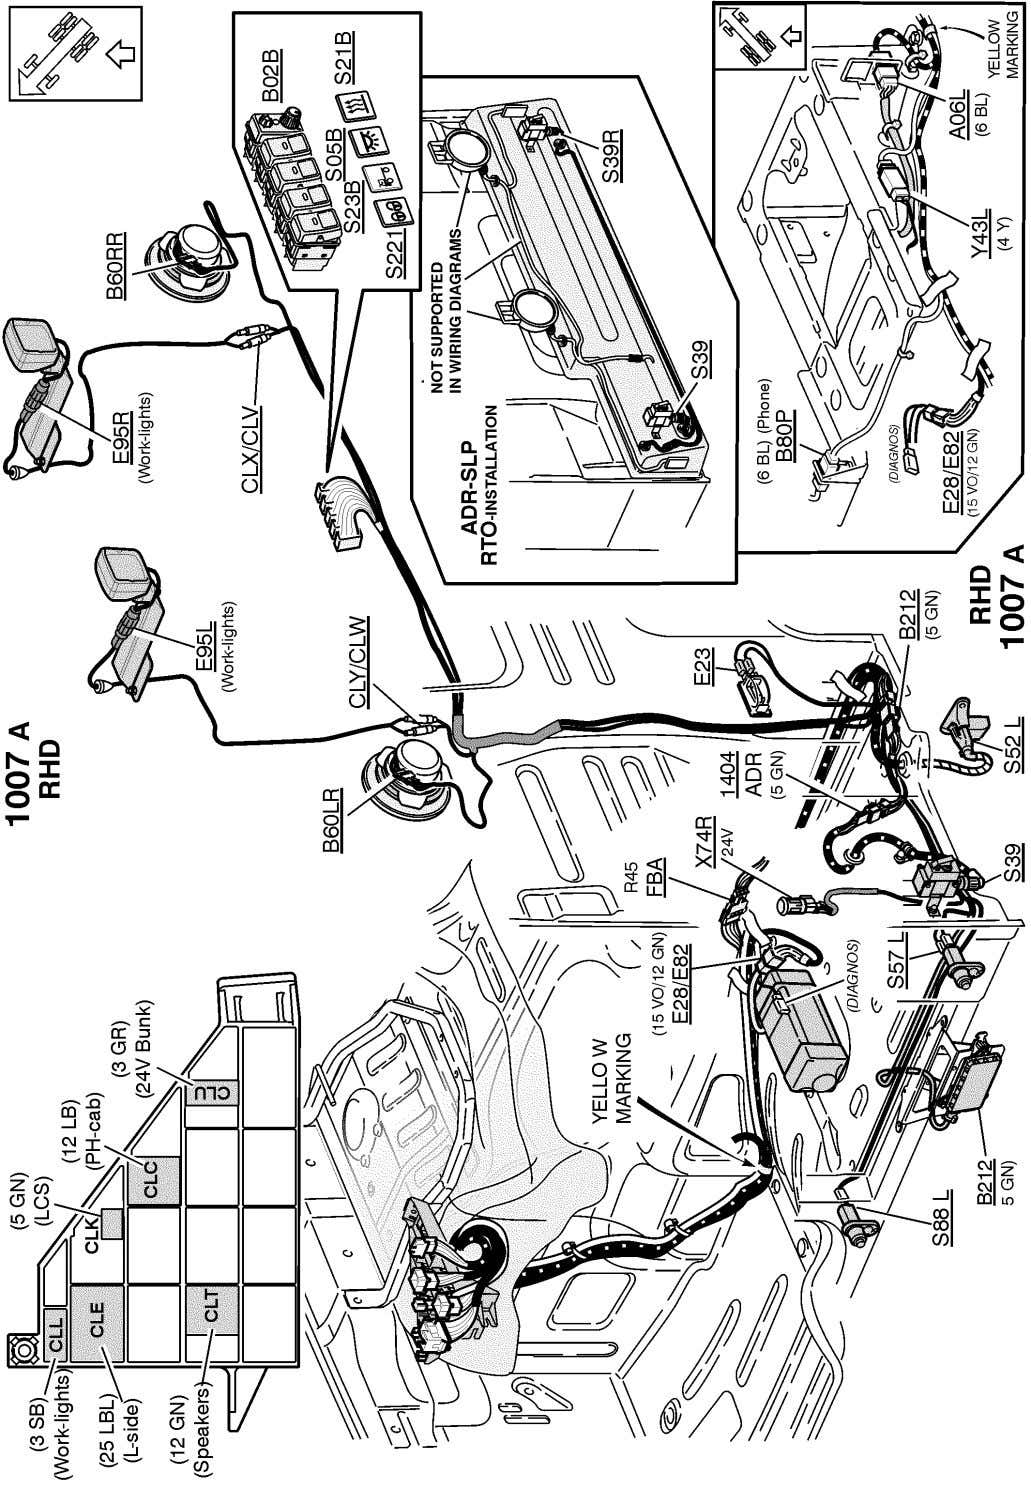 T3057080 Wiring diagram Page 149 (298)